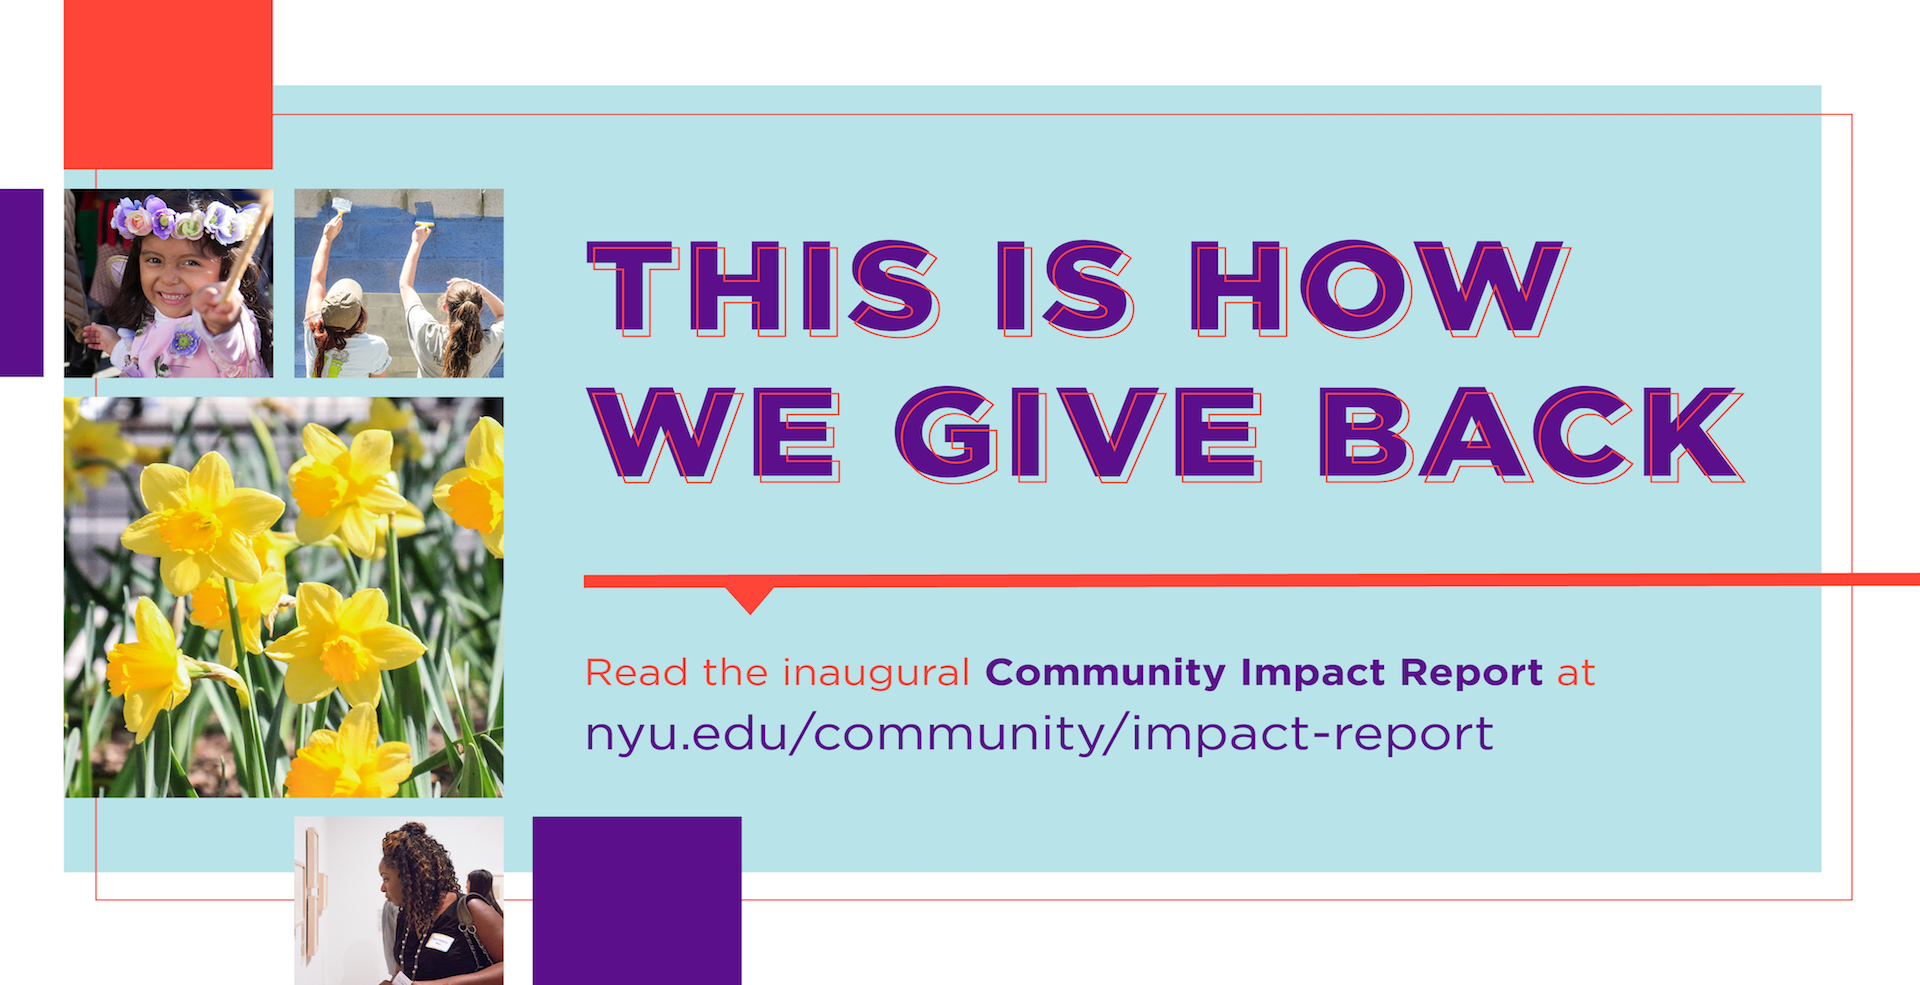 ISAW Featured in the NYU Community Impact Report